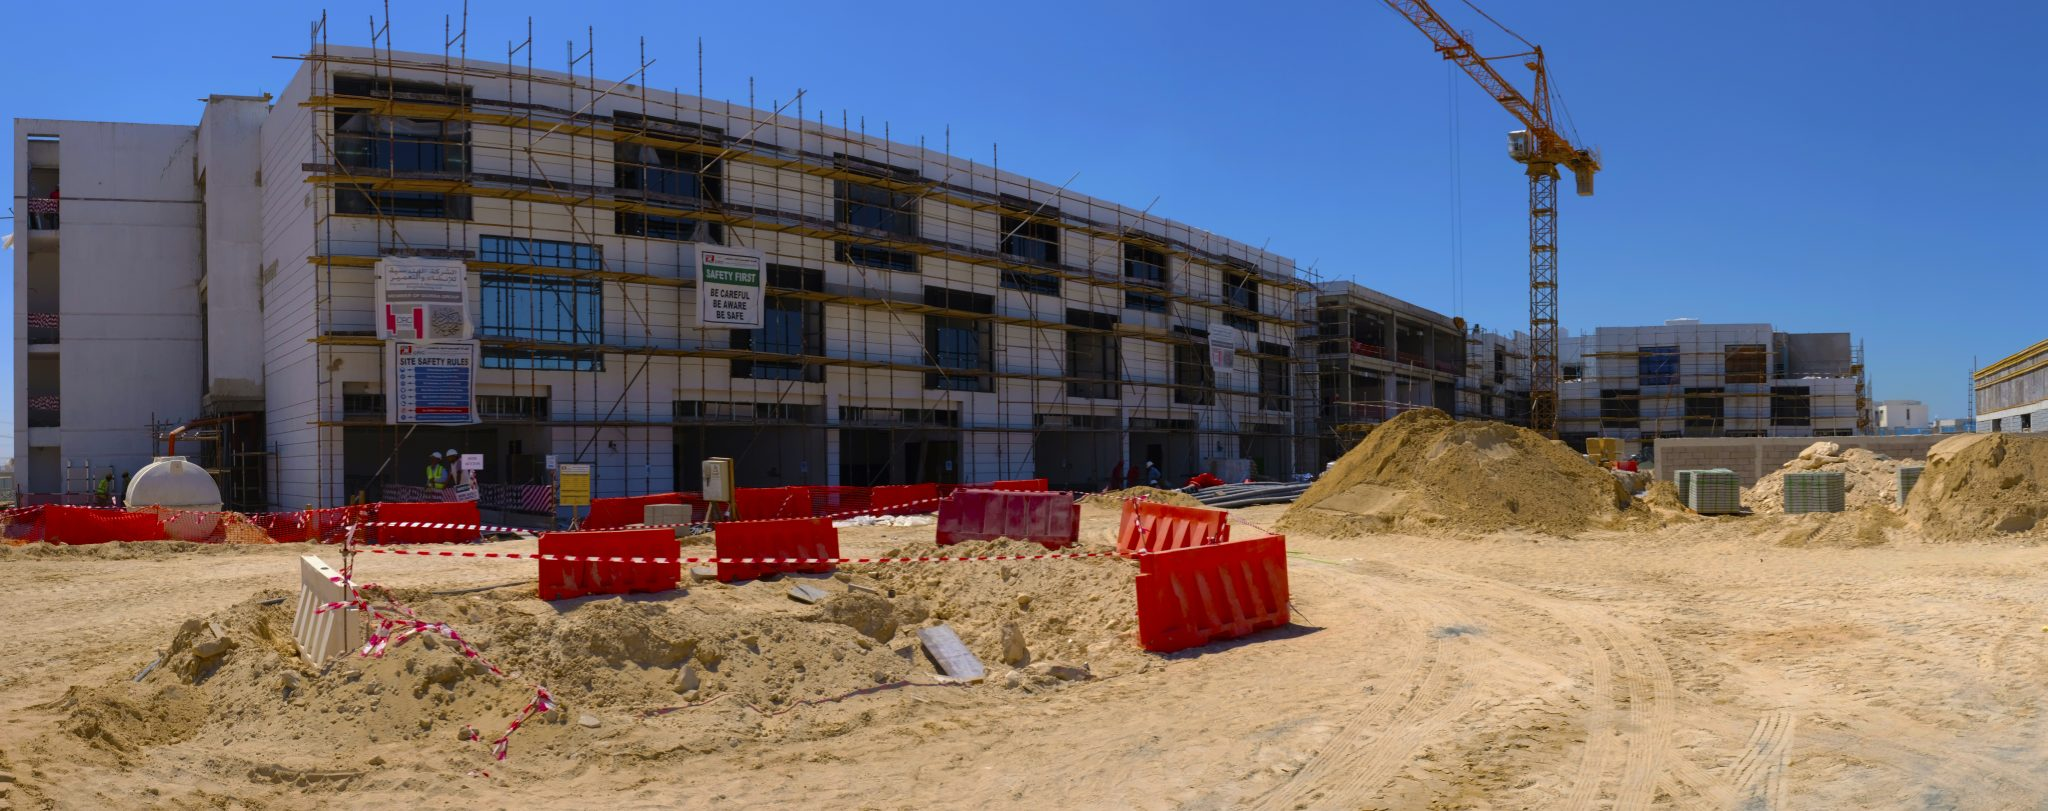 Photograph of the construction underway at The Arbor school in Dubai as of March 2018